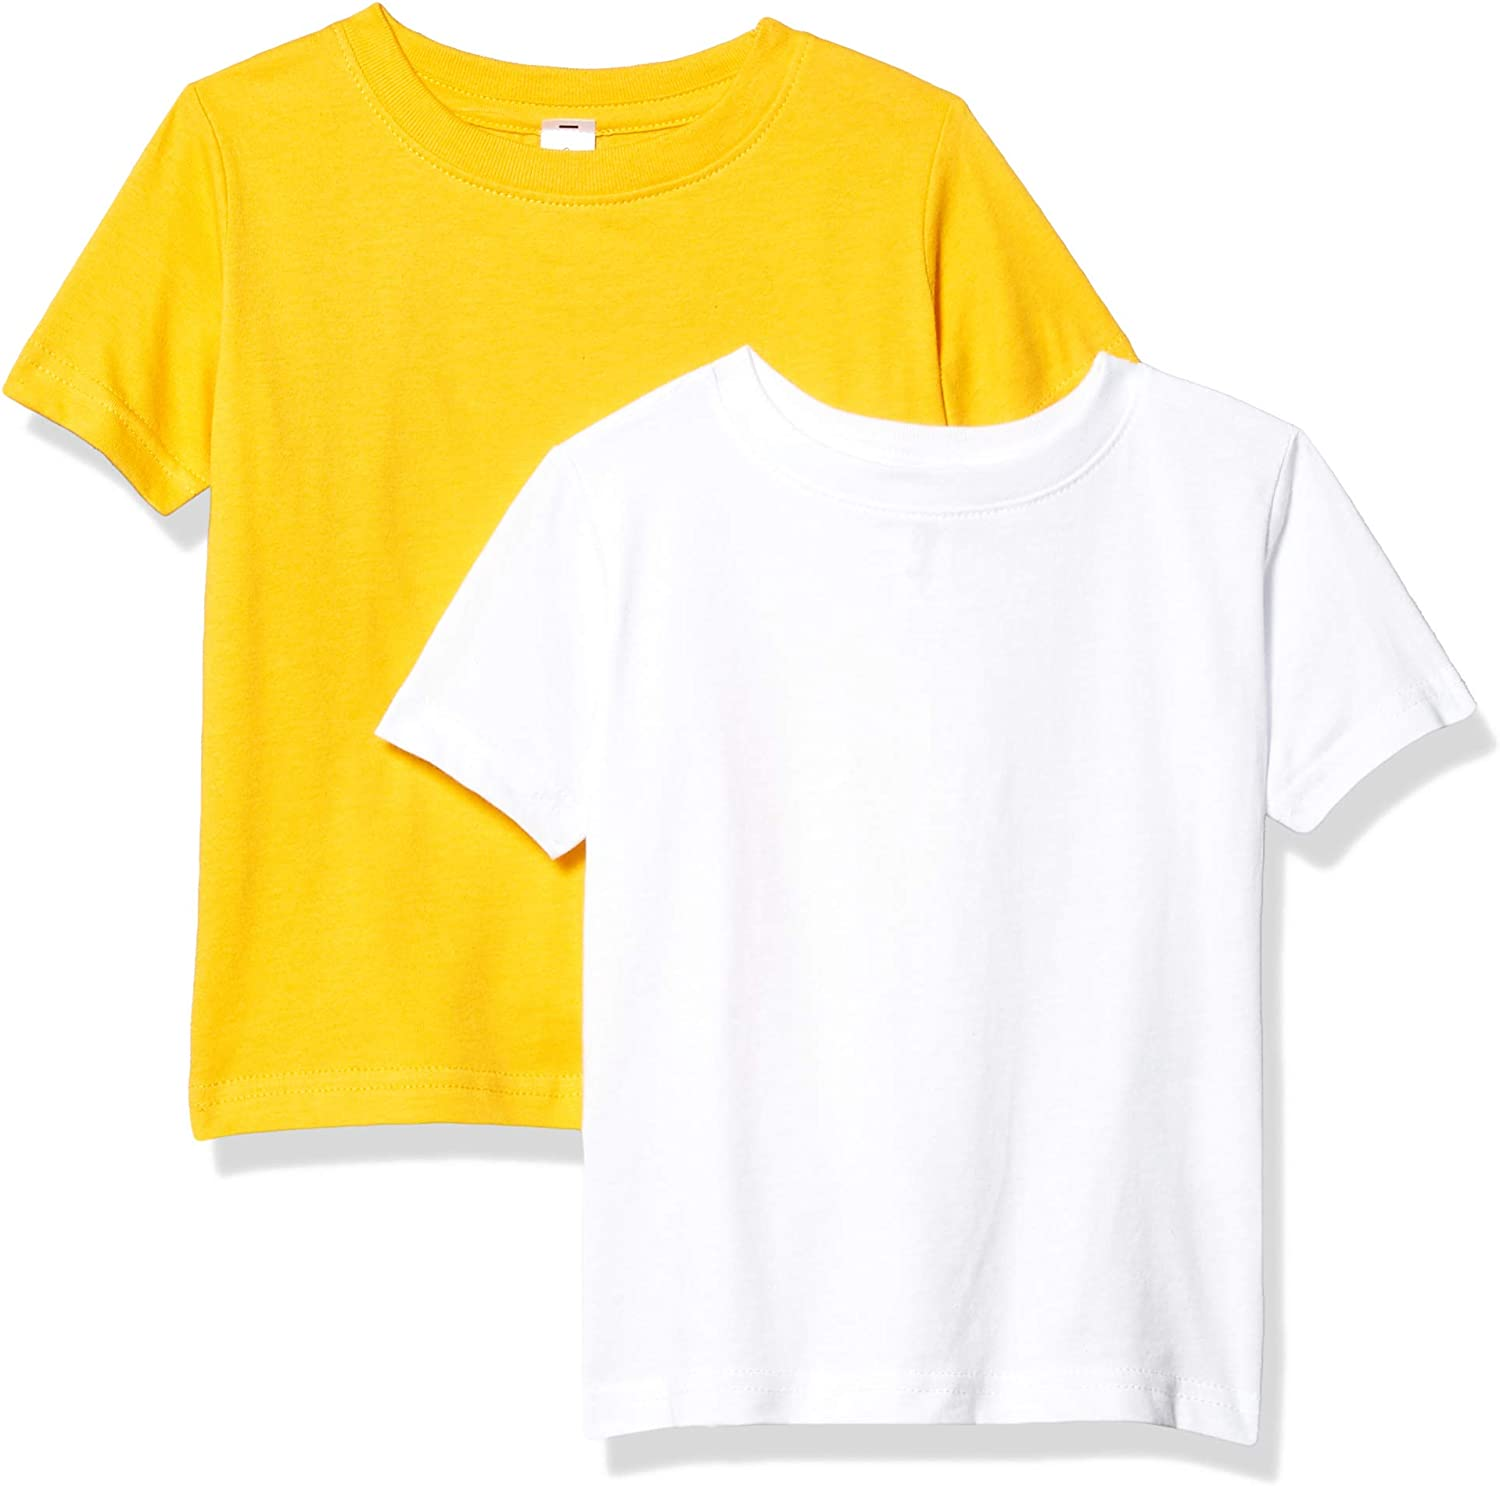 Marky G Apparel Baby Fine Jersey Tee